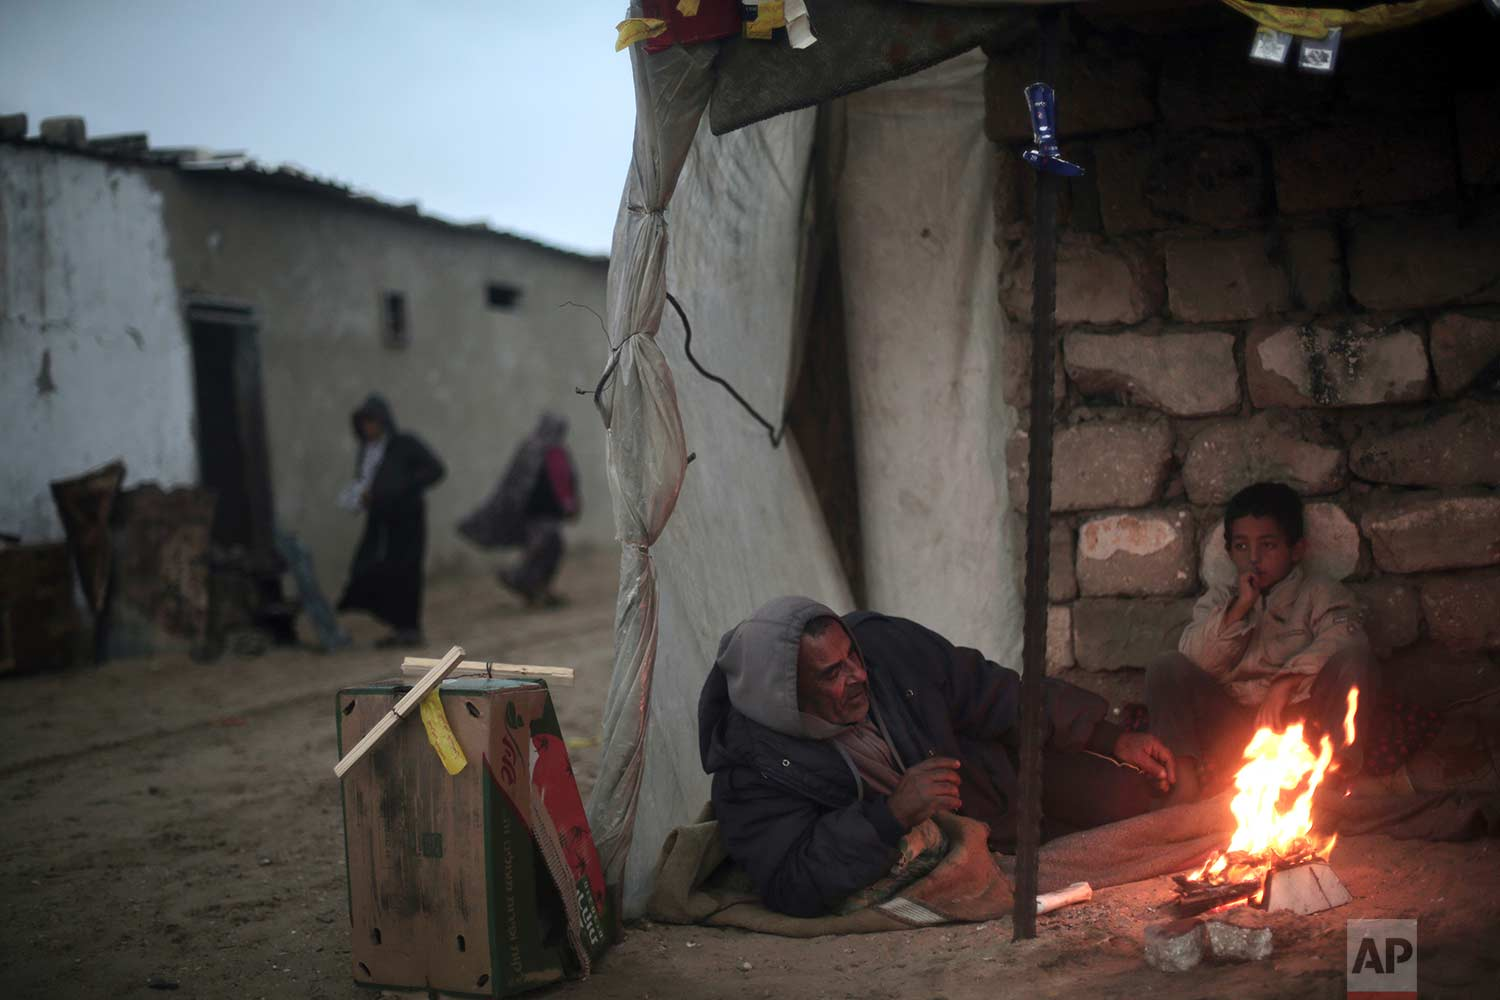 A Palestinian man and his son warm themselves by a fire during cold, rainy weather in a slum on the outskirts of the Khan Younis refugee camp, southern Gaza Strip, Friday, Jan. 5, 2018. (AP Photo/Khalil Hamra)